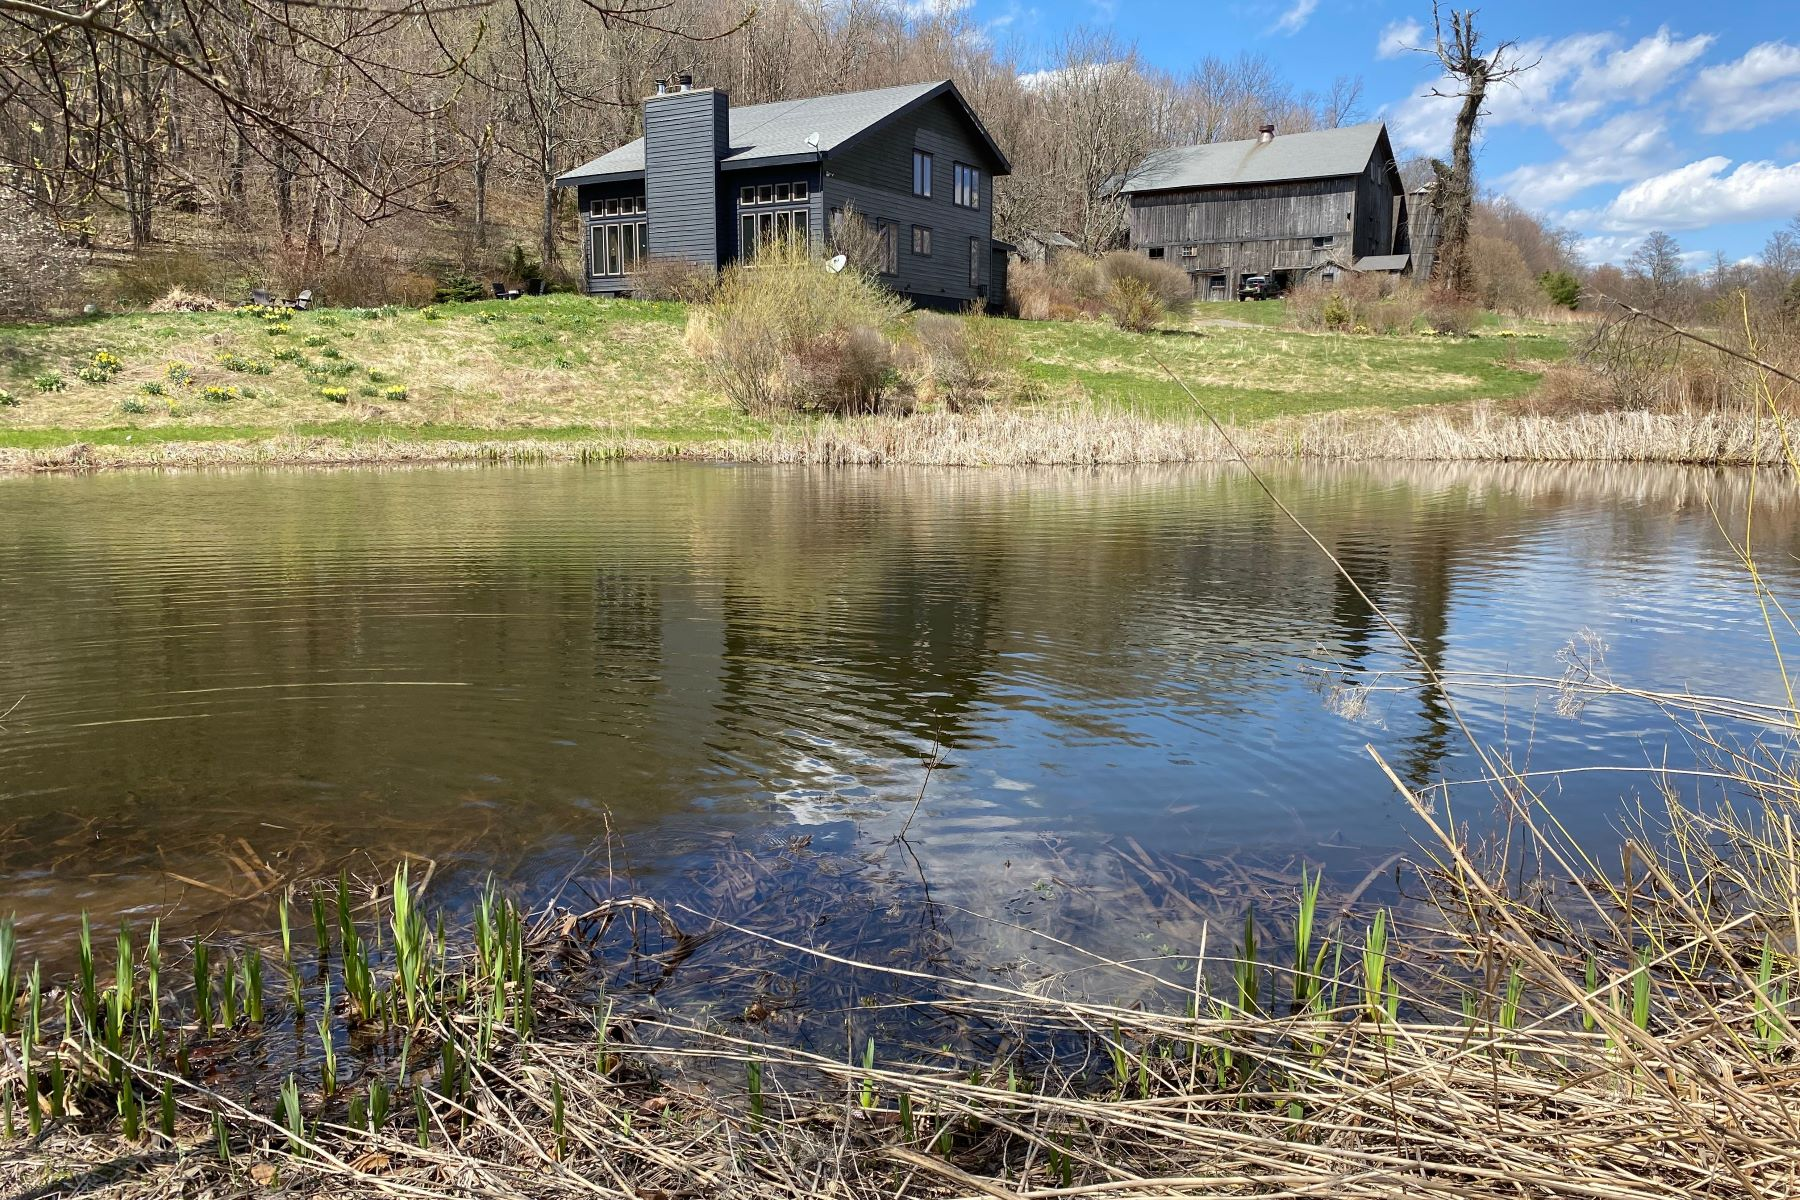 Single Family Homes for Active at Craig Hill Farm 625 Herr Rd Andes, New York 13731 United States